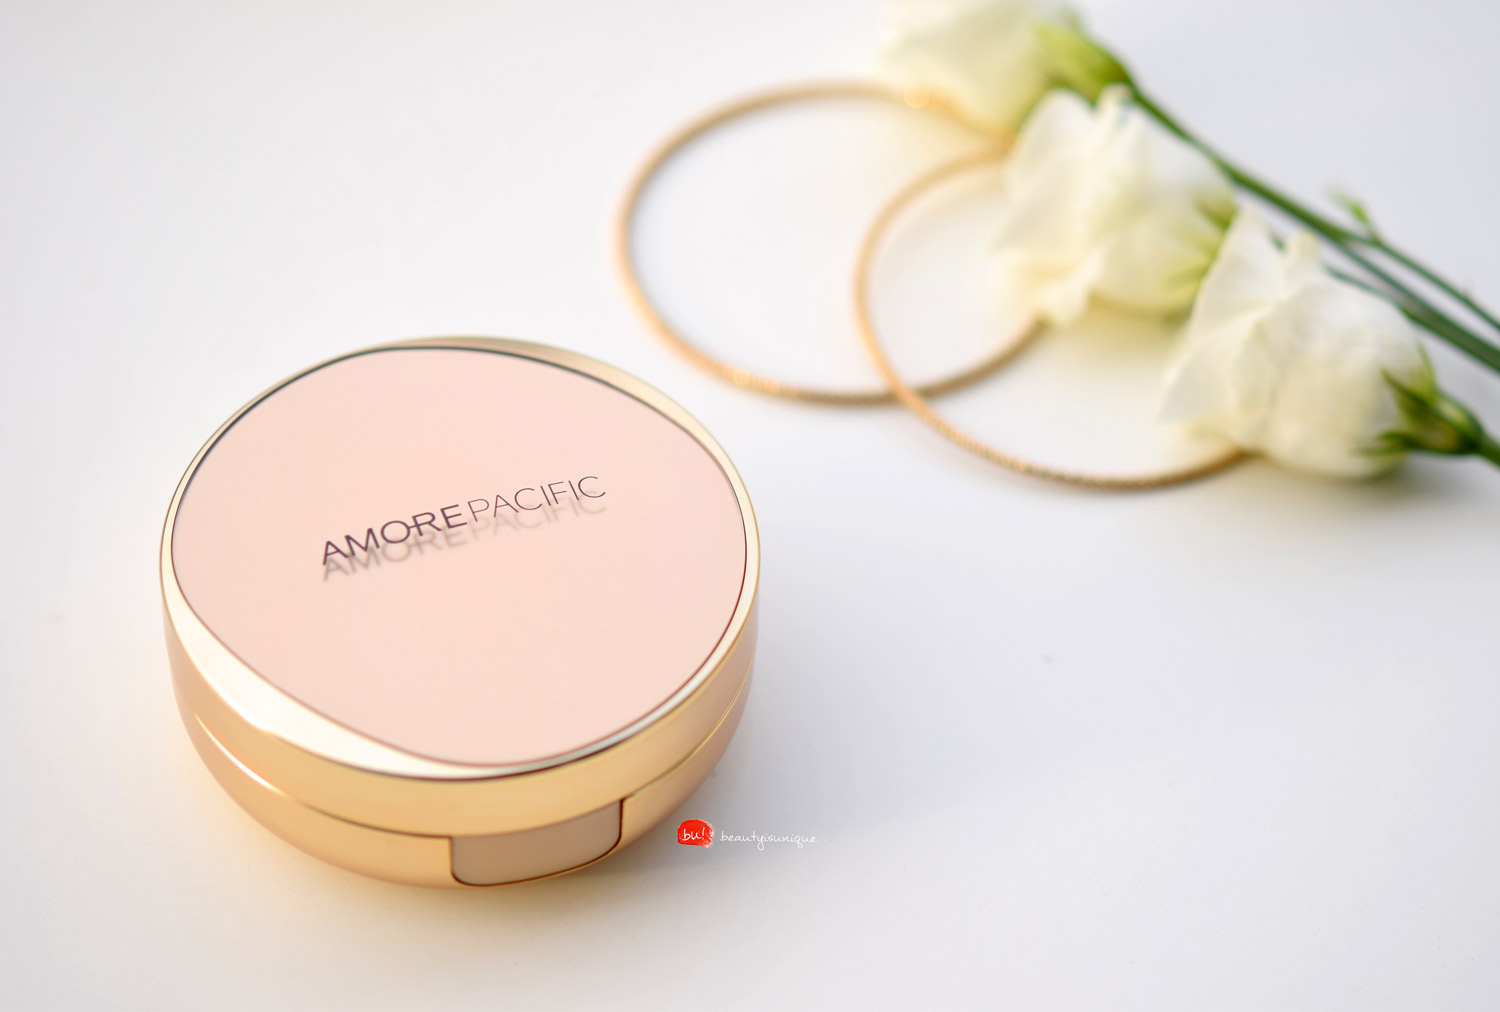 Amore-pacific-cushion-age-correcting-foundation